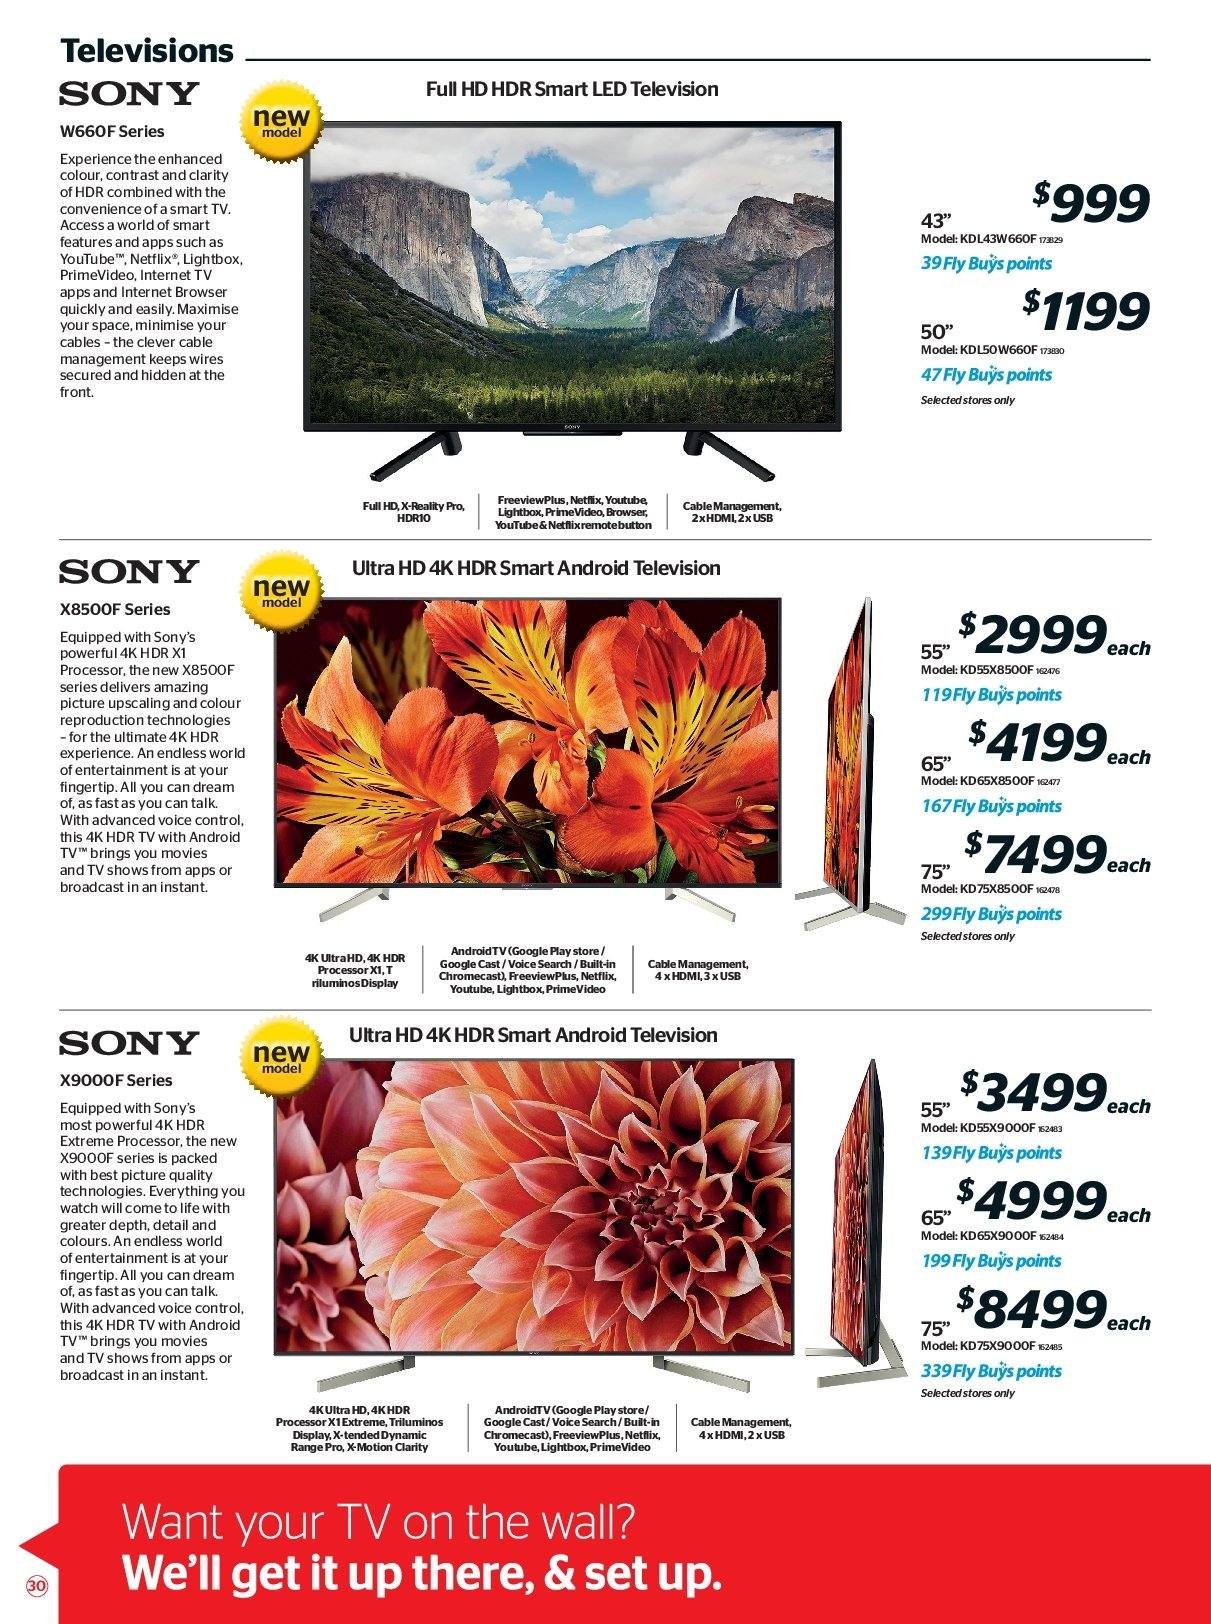 Noel Leeming mailer - 16.05.2018 - 29.05.2018 - Sales products - android, android tv, full hd, google, smart tv, sony, uhd tv, ultra hd, usb, watch, hdmi, processor. Page 30.